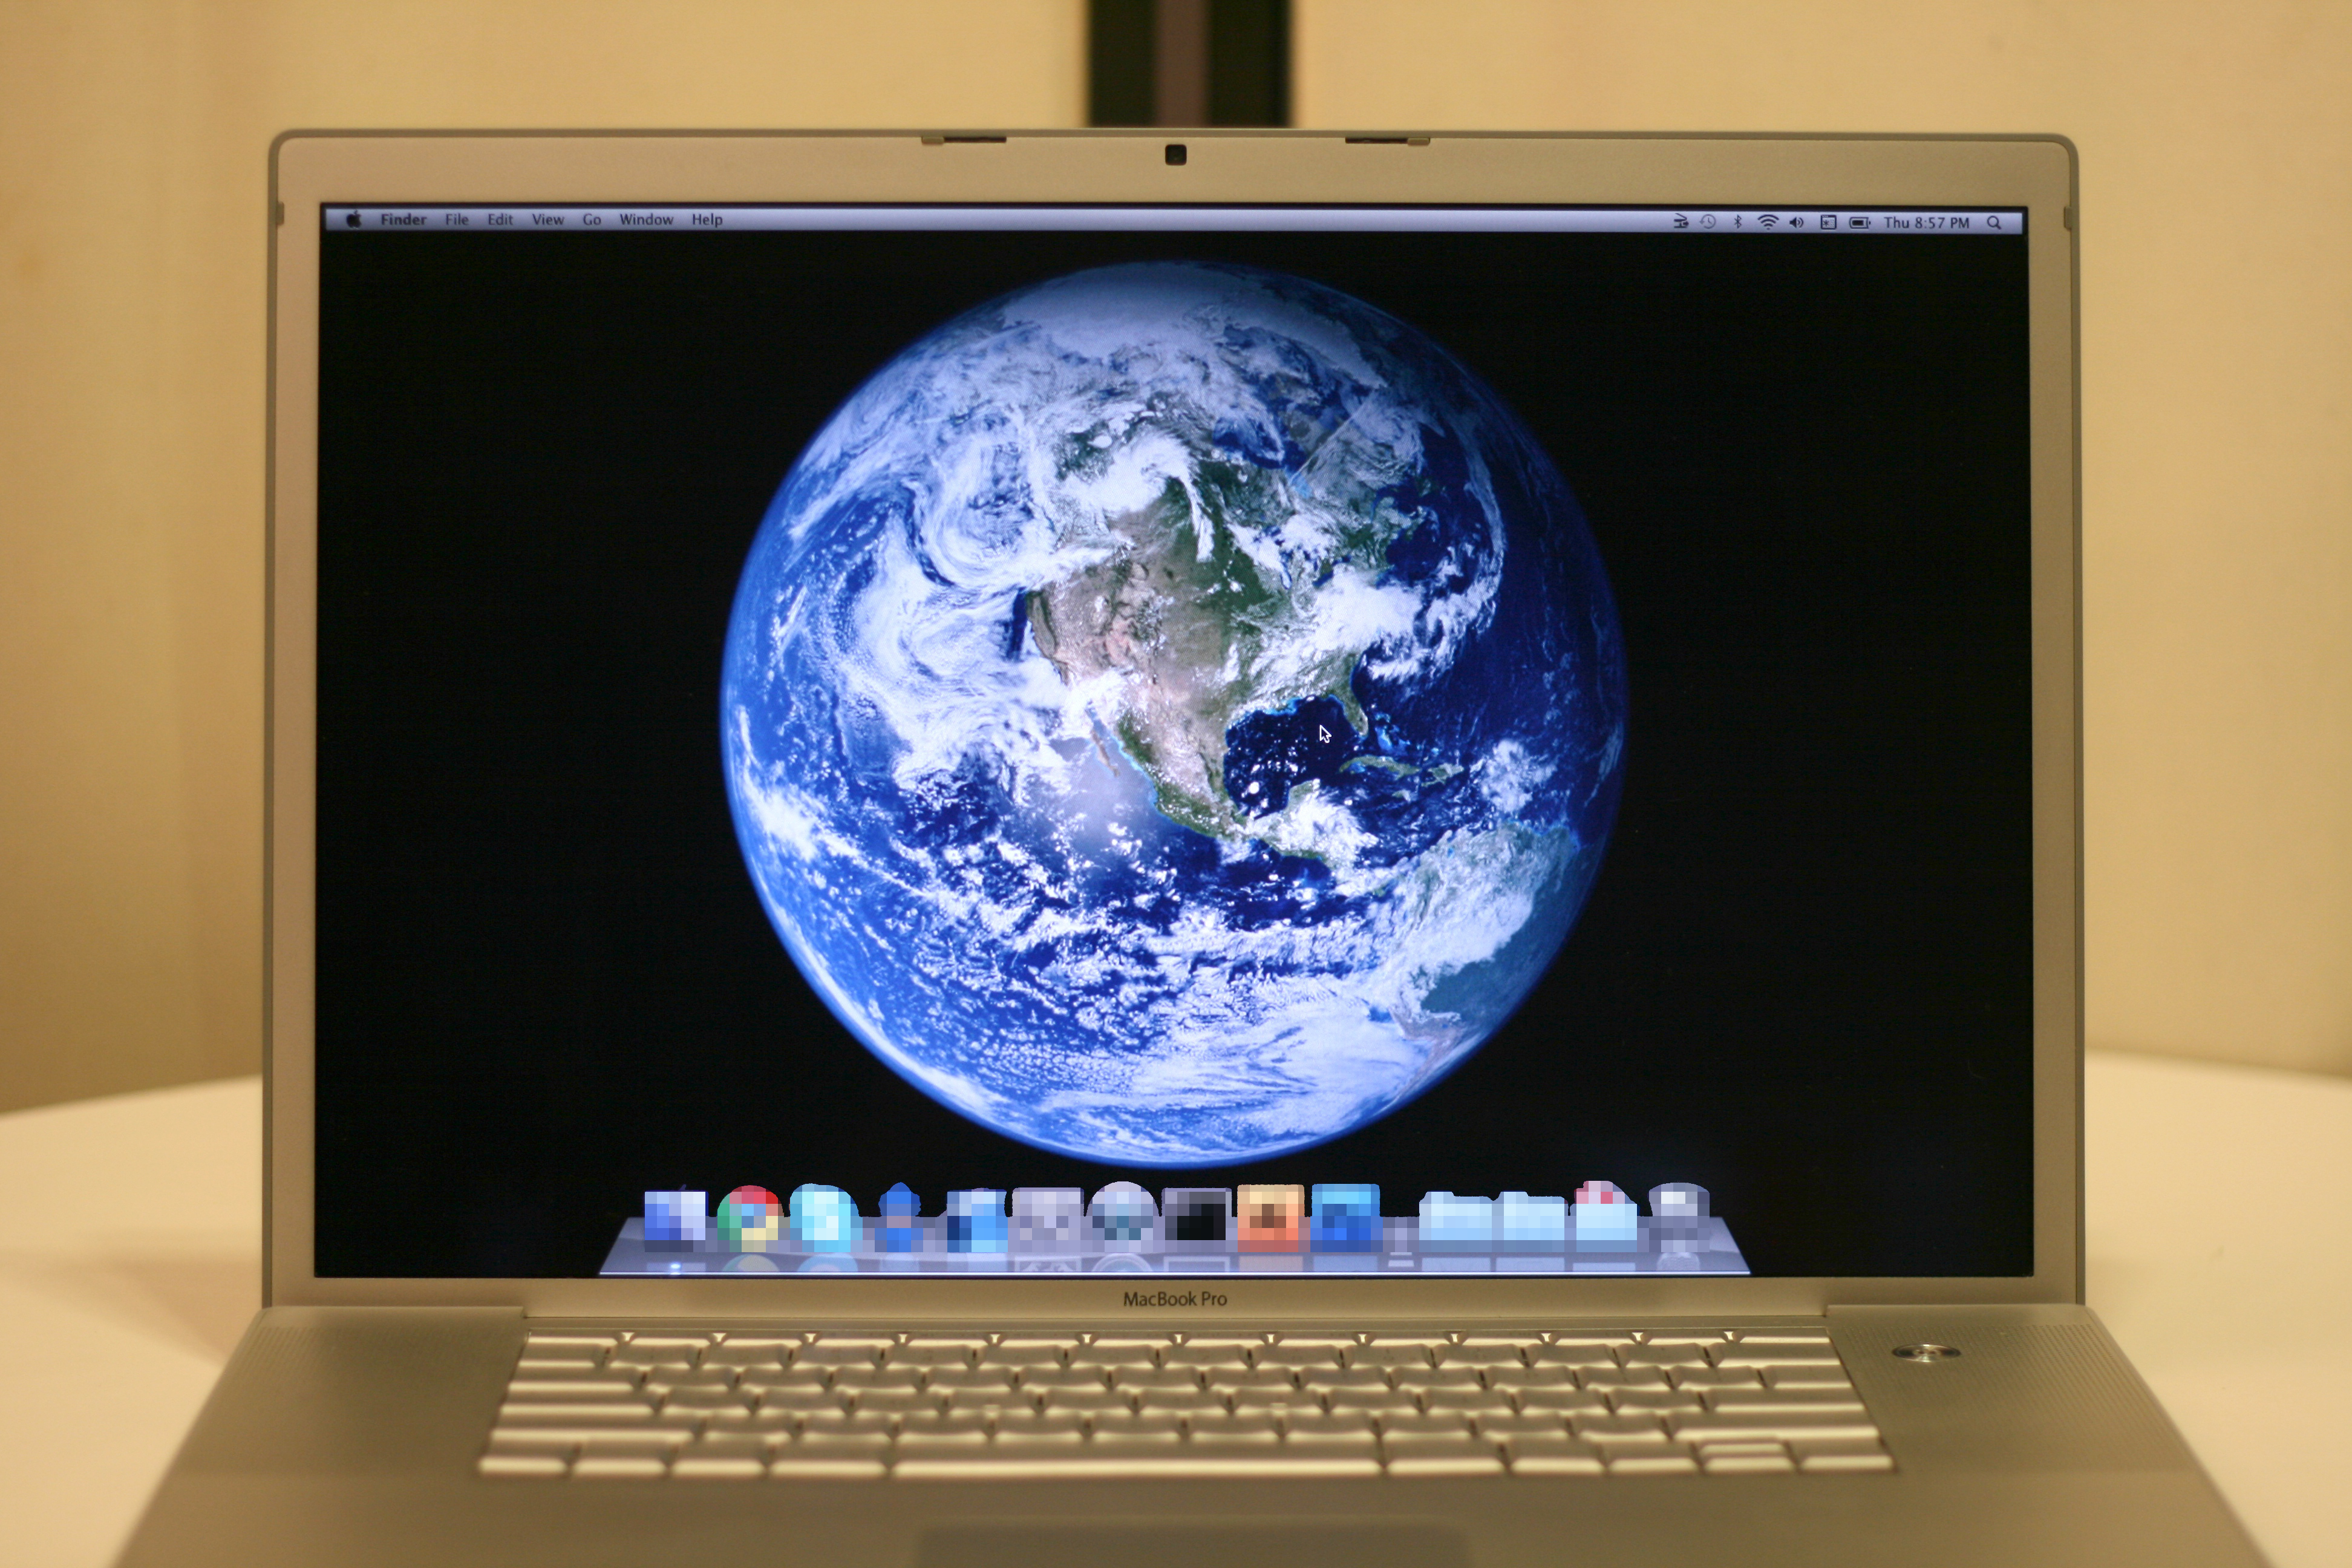 how to get mac os x 10.6 for free